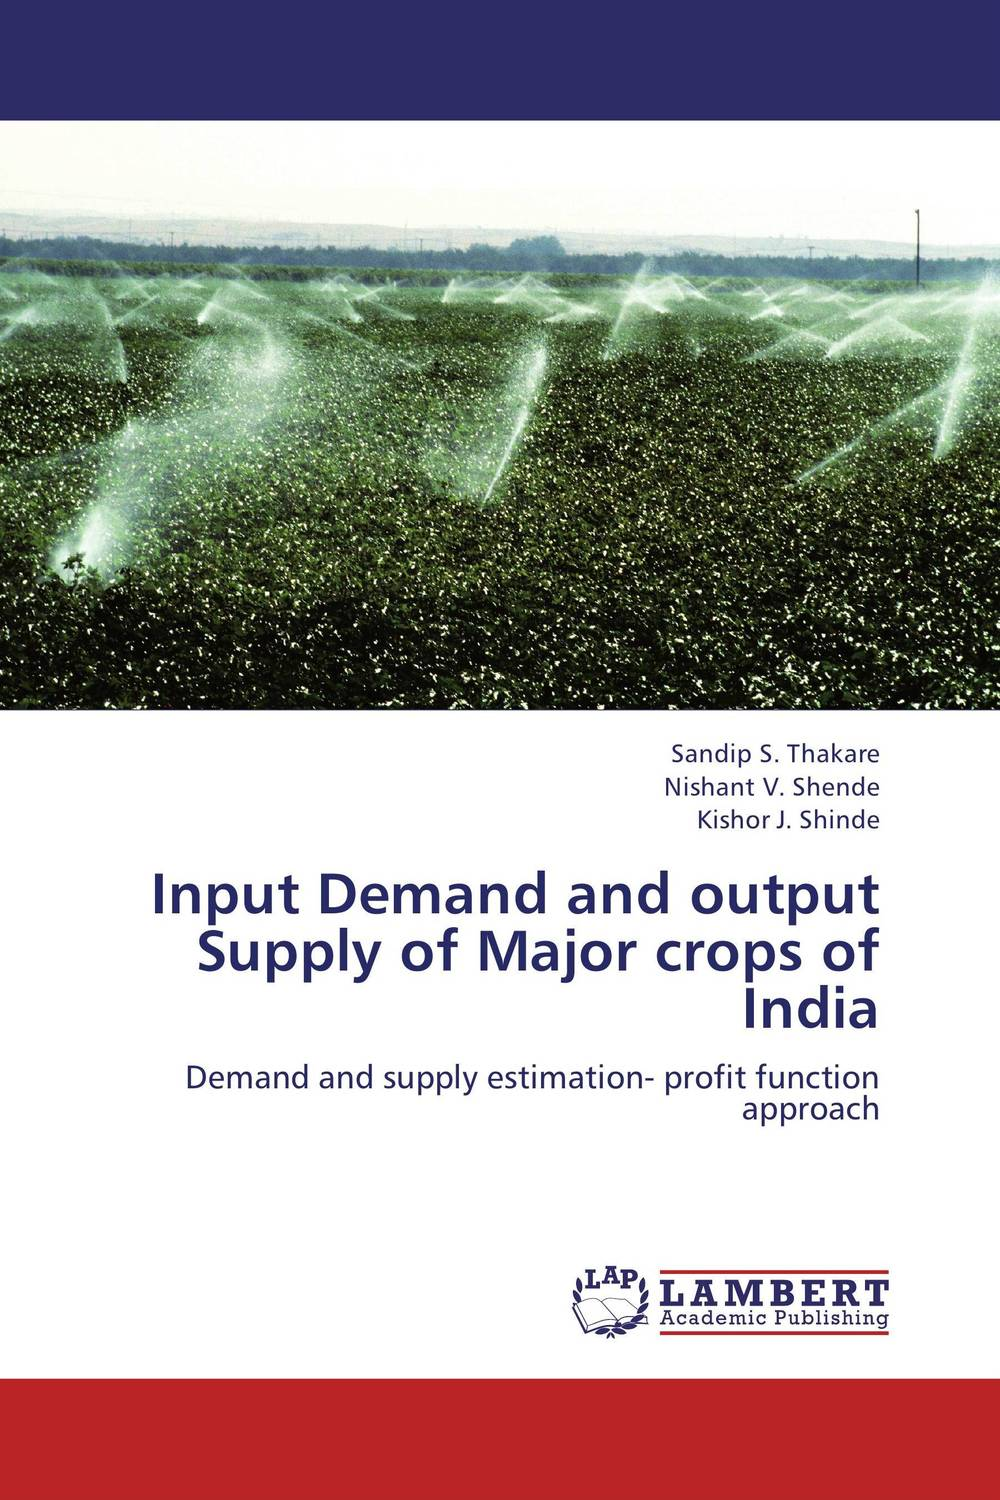 Input Demand and output Supply of Major crops of India rudolf kampf ваза 19 см 24118213 1793 rudolf kampf